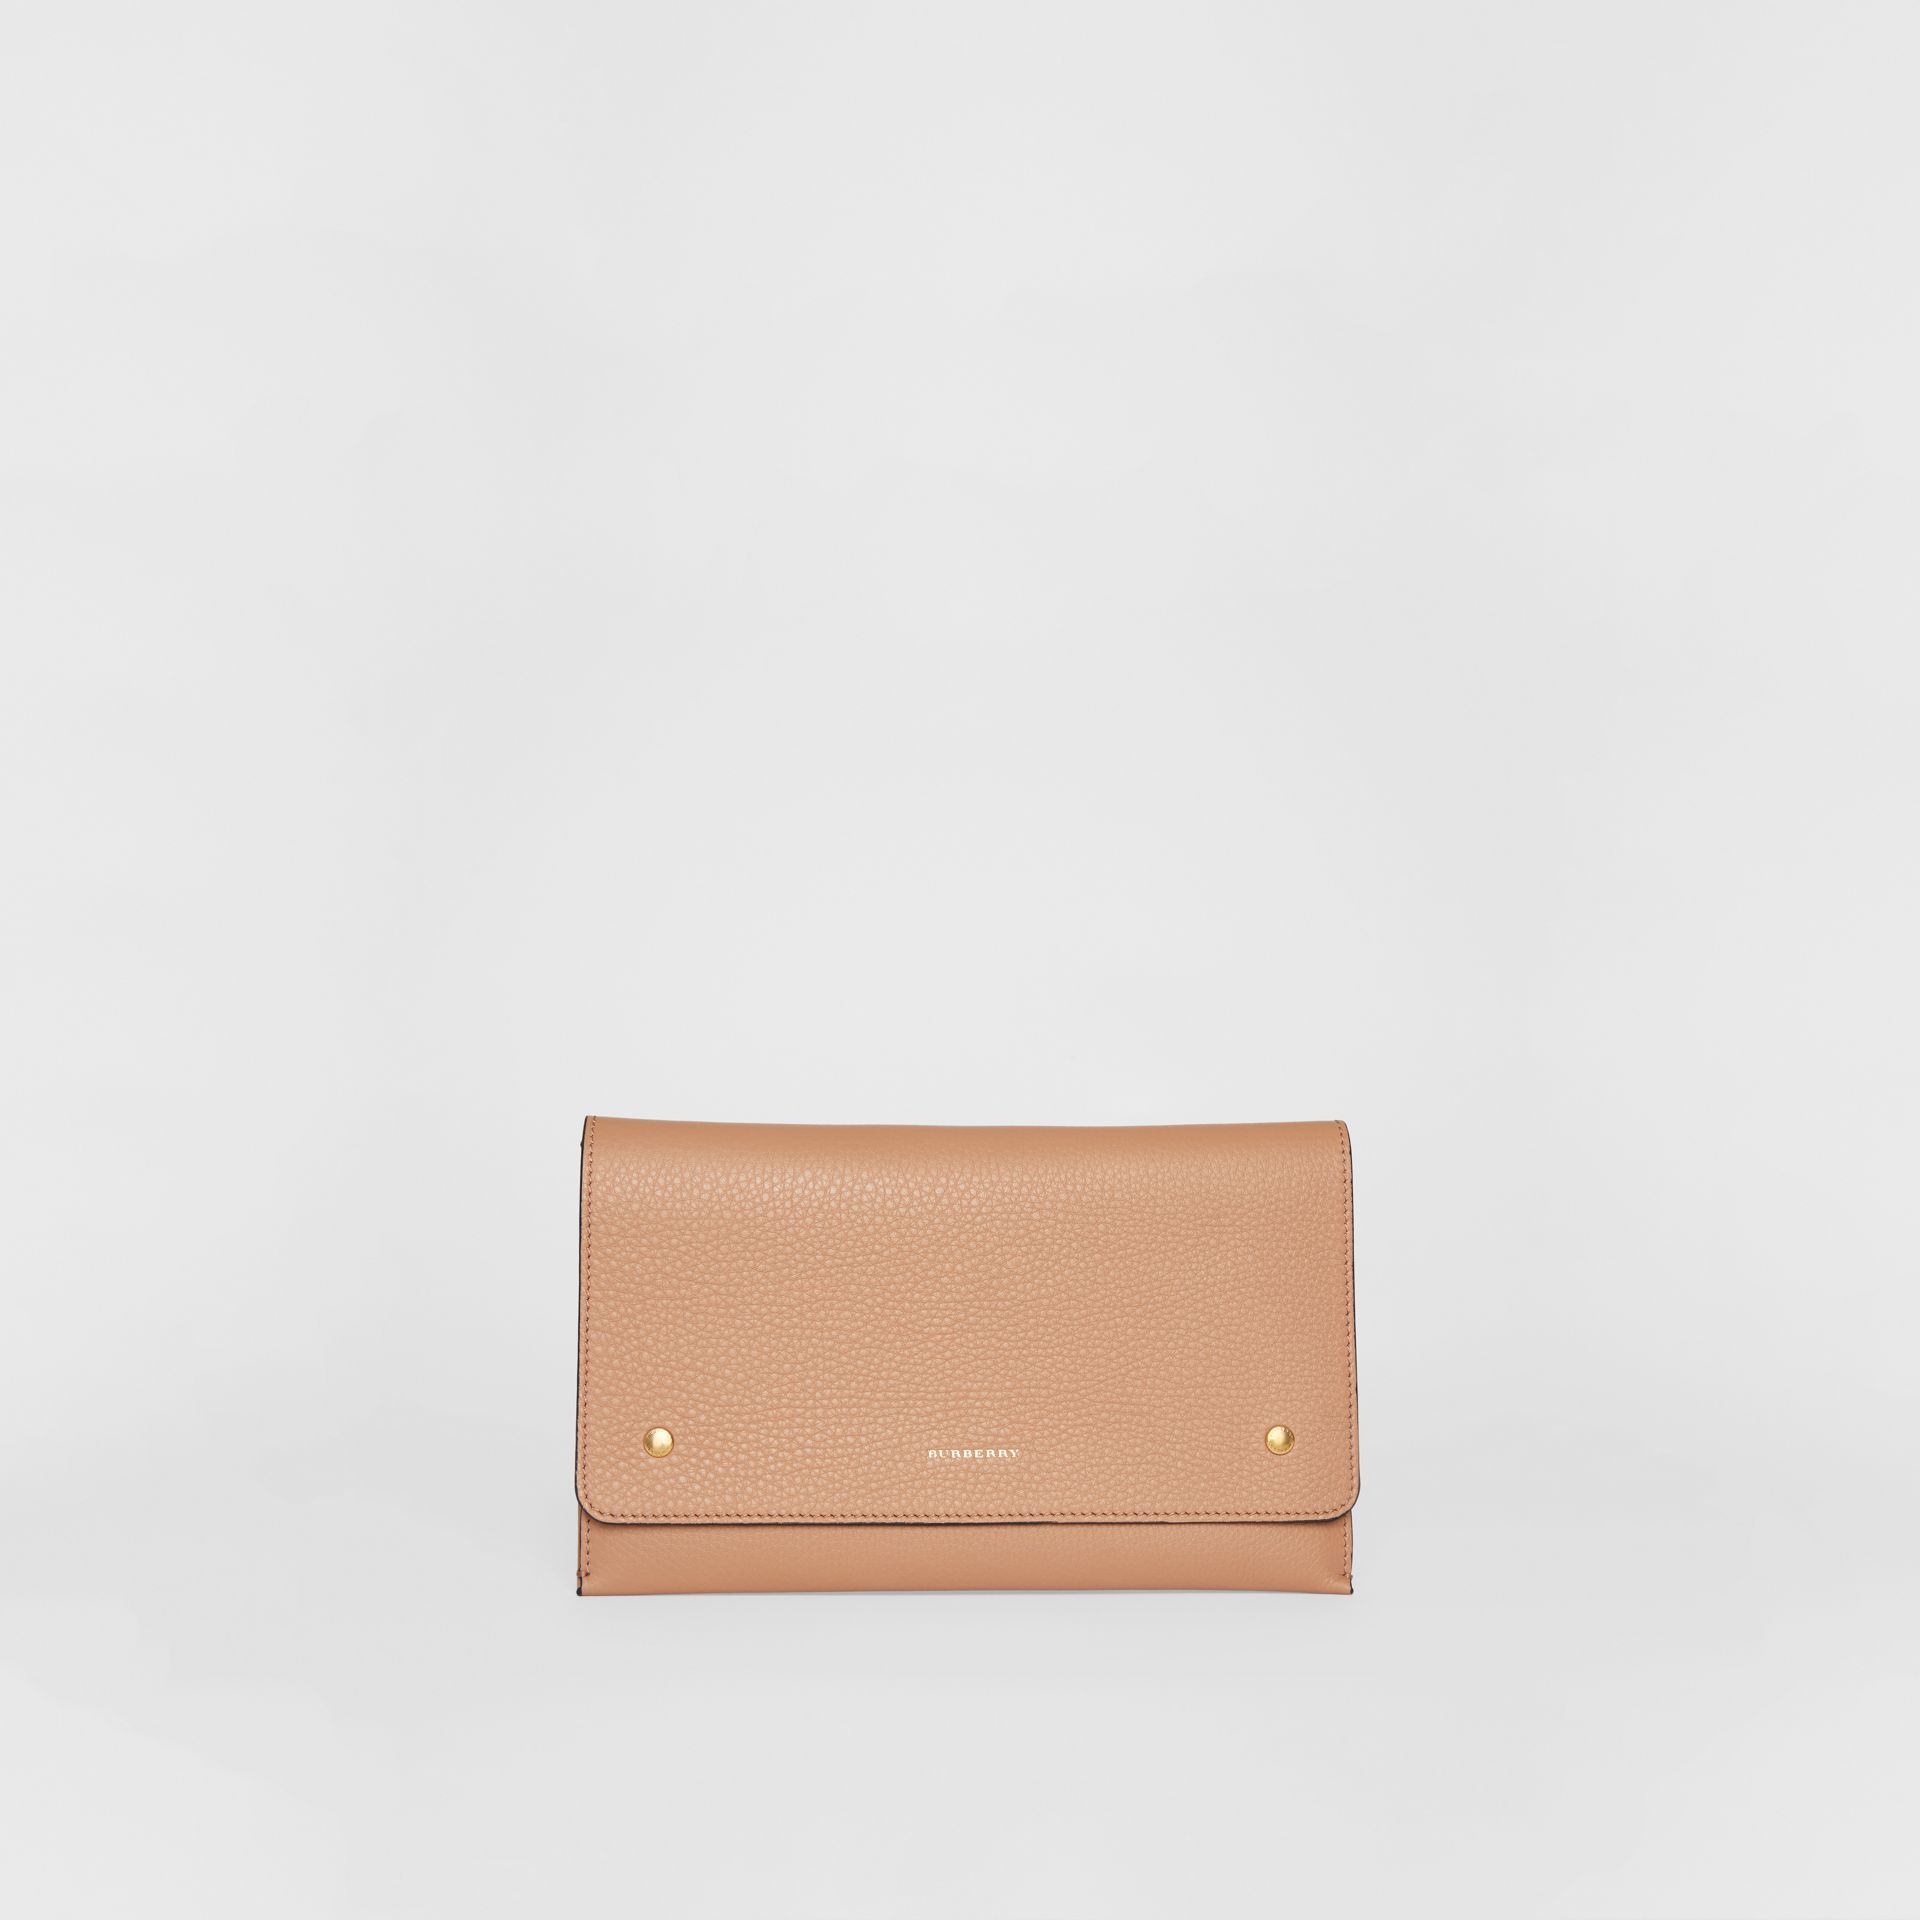 Two-tone Leather Wristlet Clutch in Light Camel - Women | Burberry Hong Kong - gallery image 2